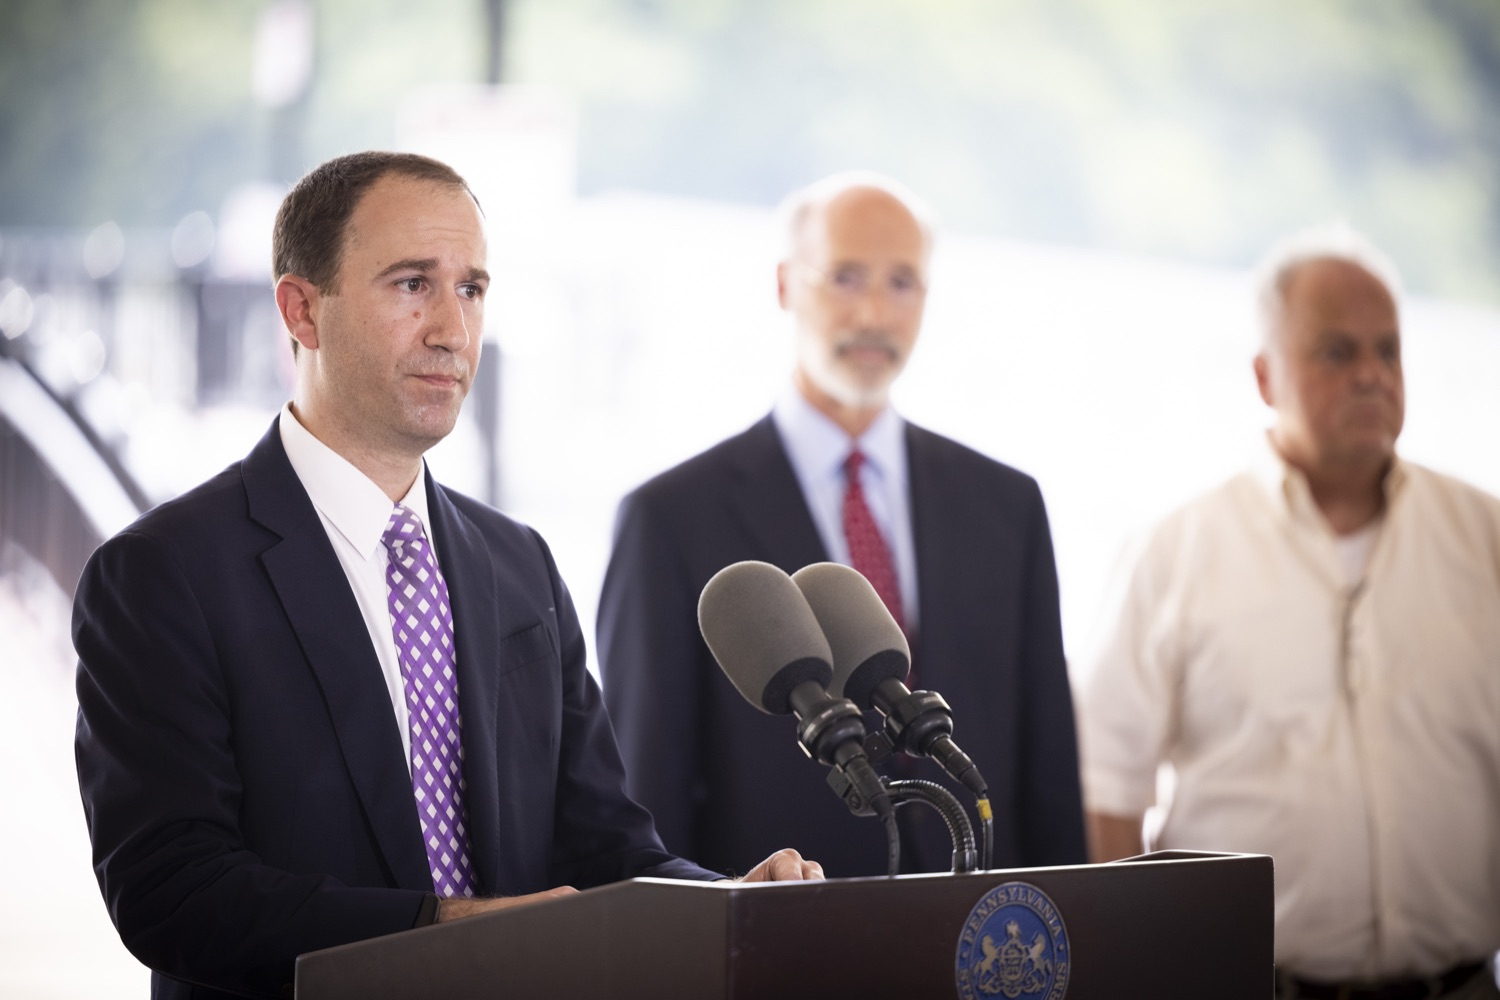 """<a href=""""https://filesource.wostreaming.net/commonwealthofpa/photo/18932_gov_chirp_dz_008.jpg"""" target=""""_blank"""">⇣Download Photo<br></a>Steve DEttorre, Deputy Secretary, DCED speaking with the press.  Governor Tom Wolf today joined the Pennsylvania Department of Community and Economic Development, Bucks County Commissioners, Bristol Borough Mayor Joseph Saxton, local lawmakers, Bucks County Economic Development Corporation, Visit Bucks County, the Bucks County Redevelopment Authority, and the owners of Itri Wood Fired to highlight the $7 million in grant funding provided to Bucks County restaurants through the COVID-19 Hospitality Industry Recovery Program(CHIRP).  JULY 16, 2021 - BRISTOL, PA"""